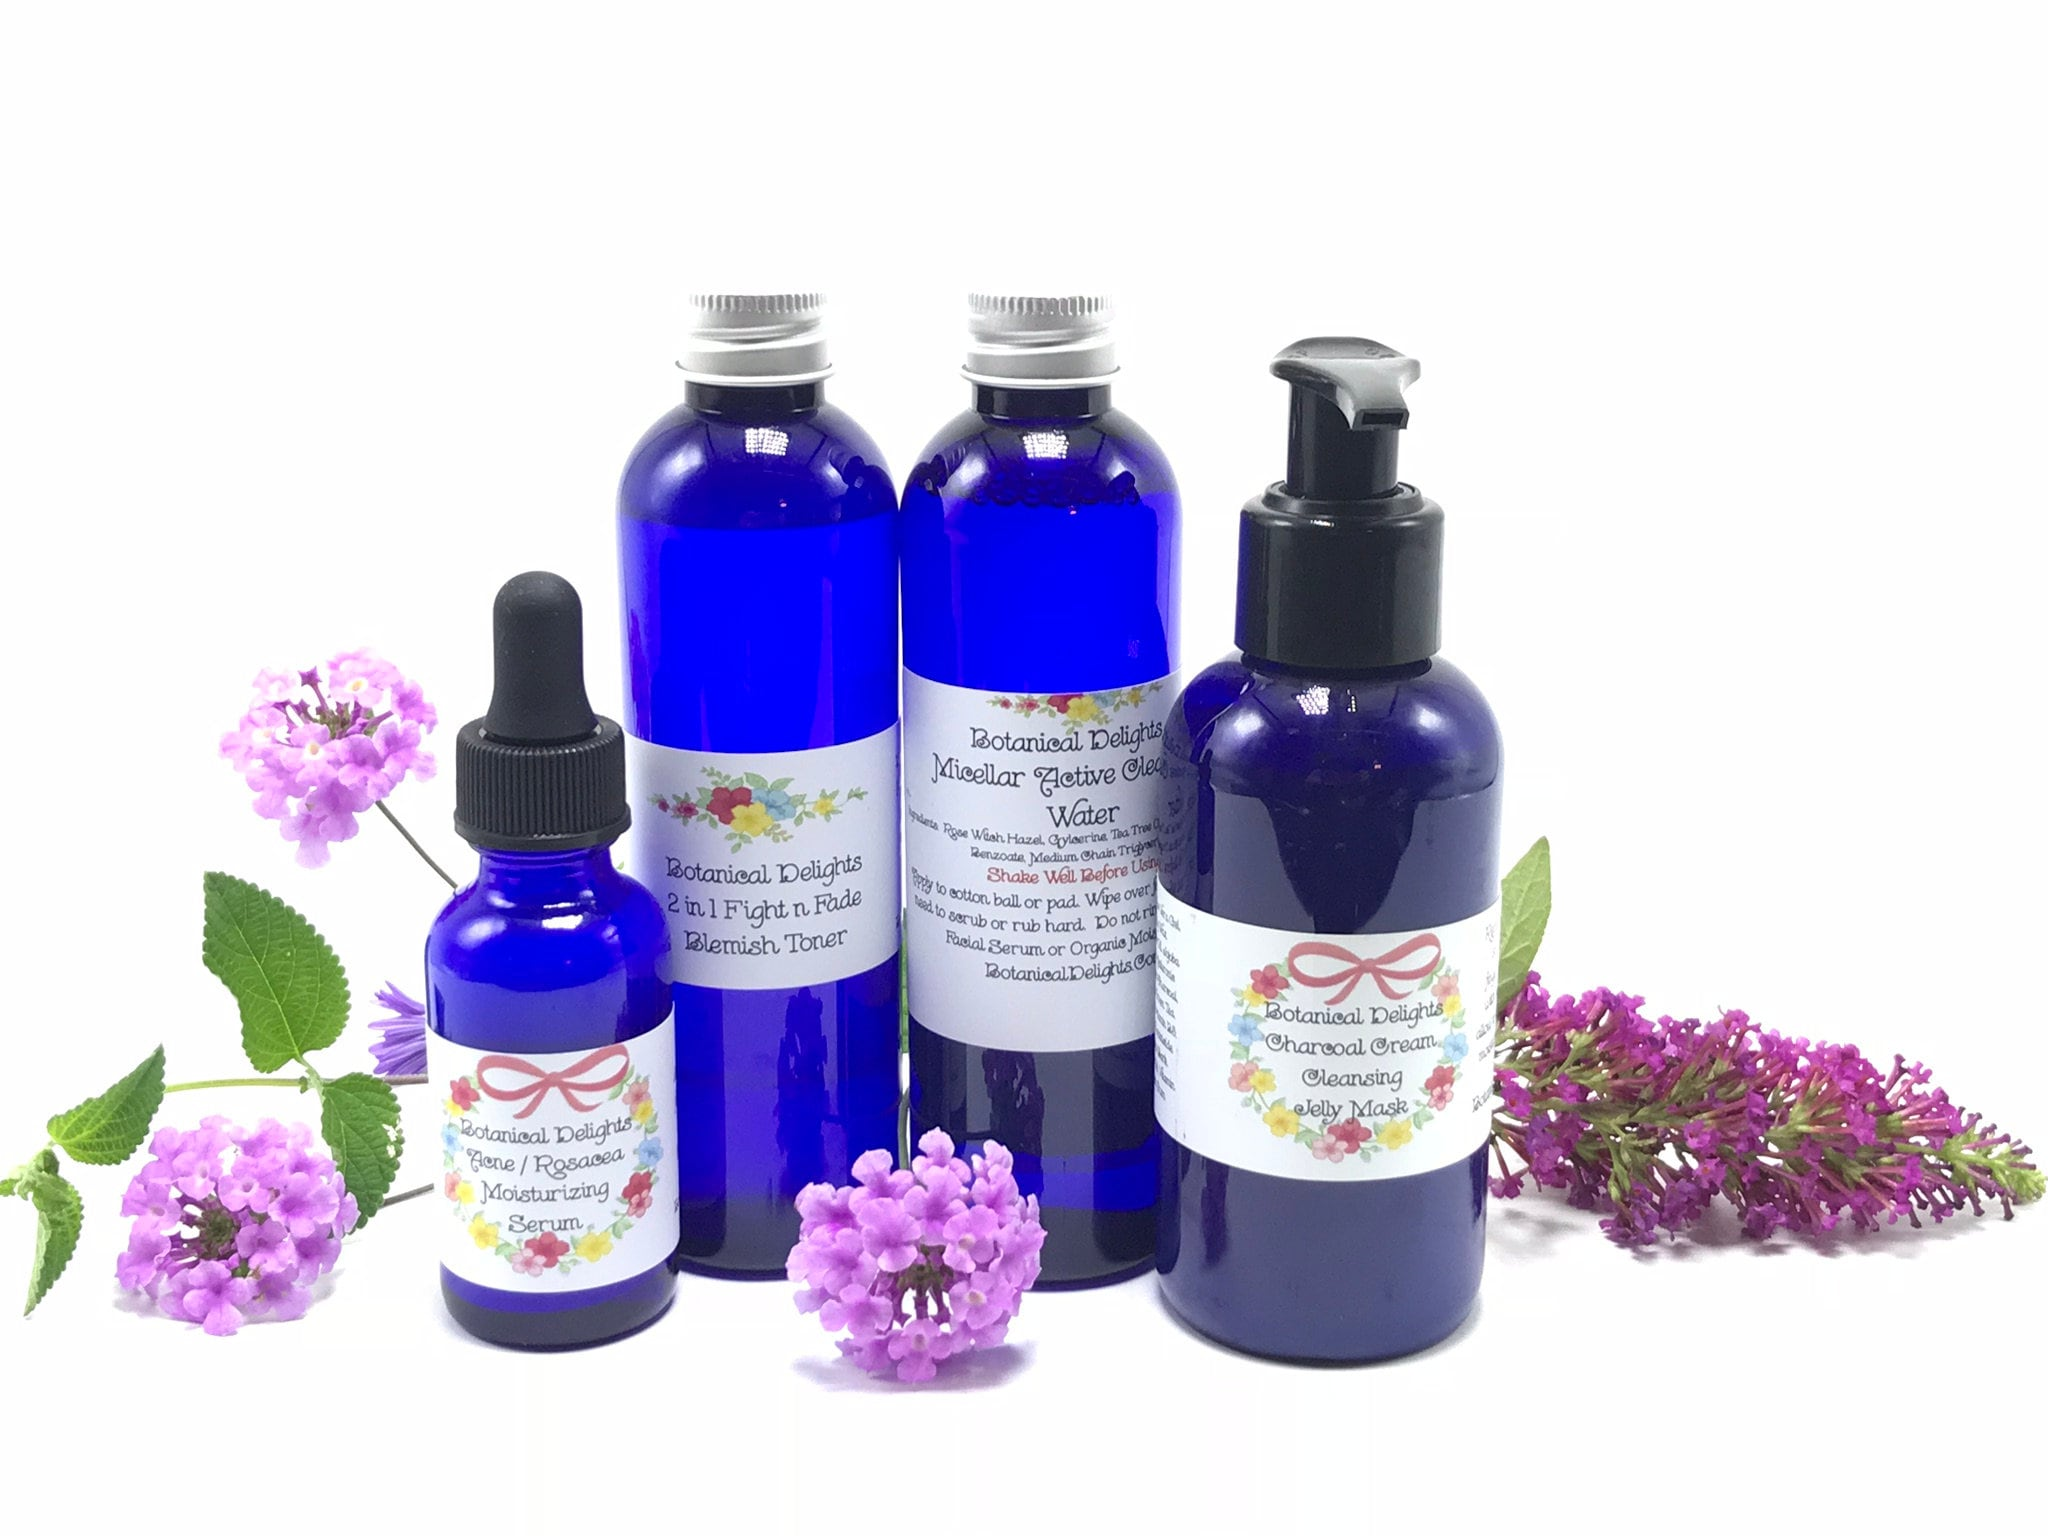 ACNE - 4 Step System - Cystic Acne, Acne, Acne Clearing, Acne Scars, Acne  Cleanser, Plant Based, MSM Sulfur, Cystic Acne Set, Acne Skincare